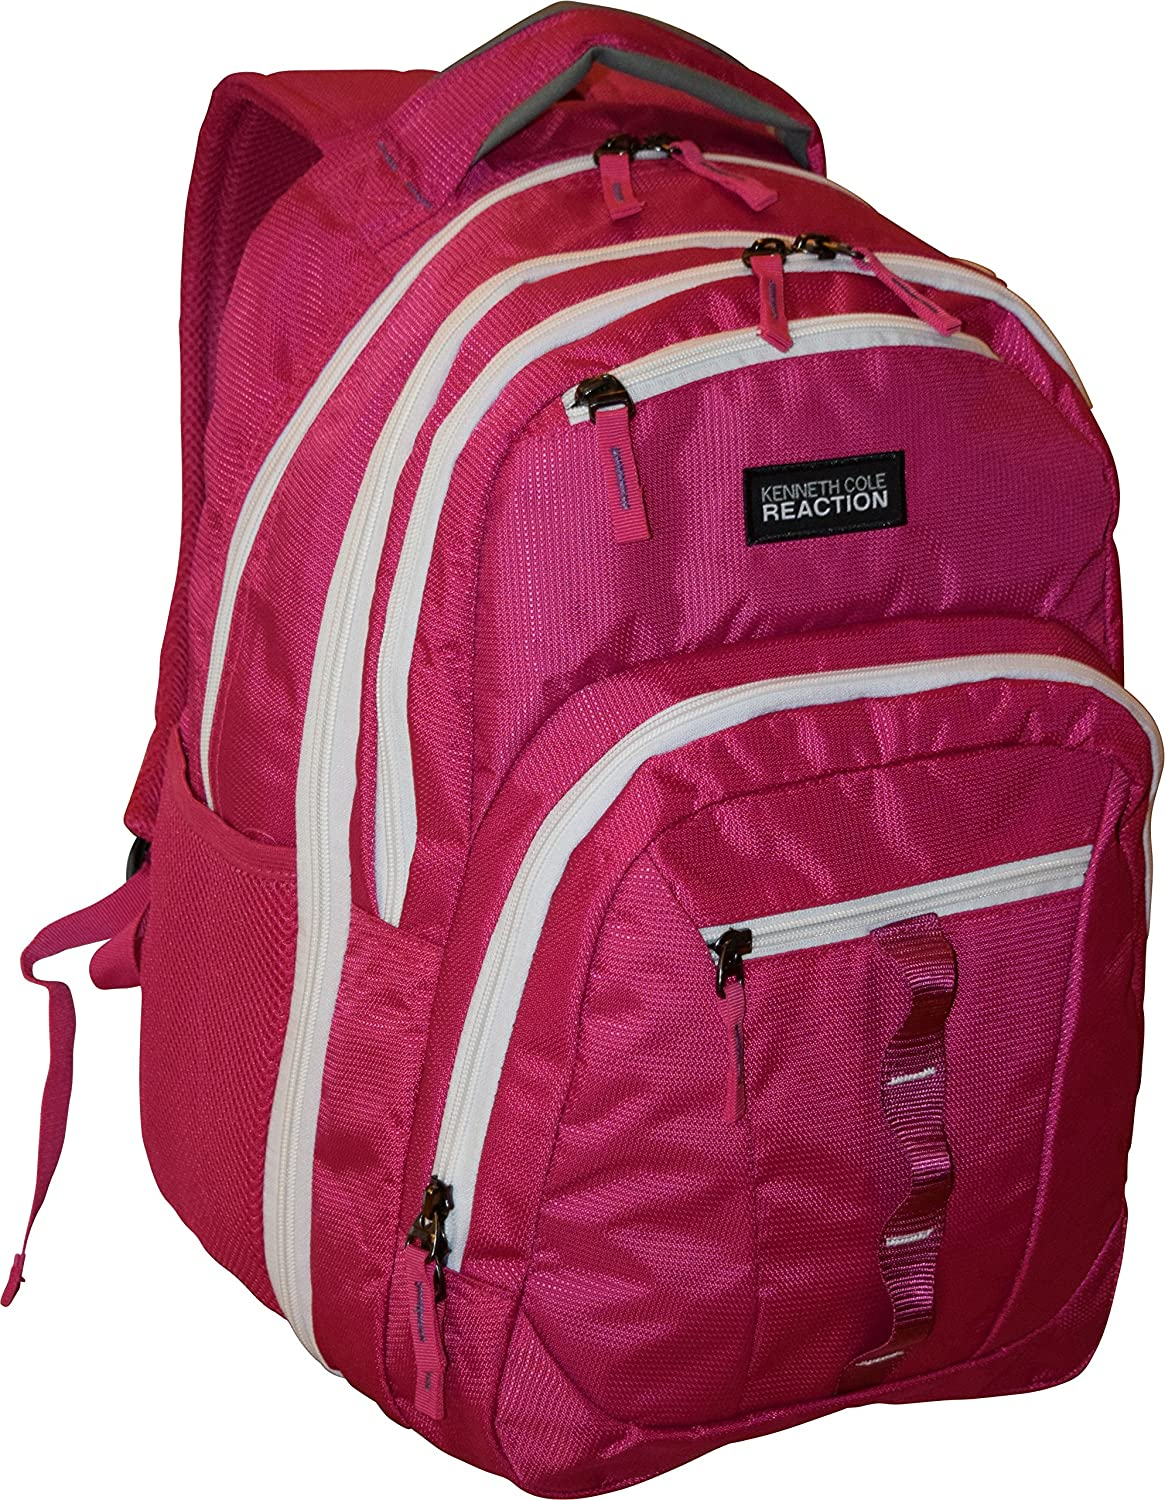 "Kenneth Cole Reaction R-Tech 16"" Double Gusset Laptop Backpack - Pink"